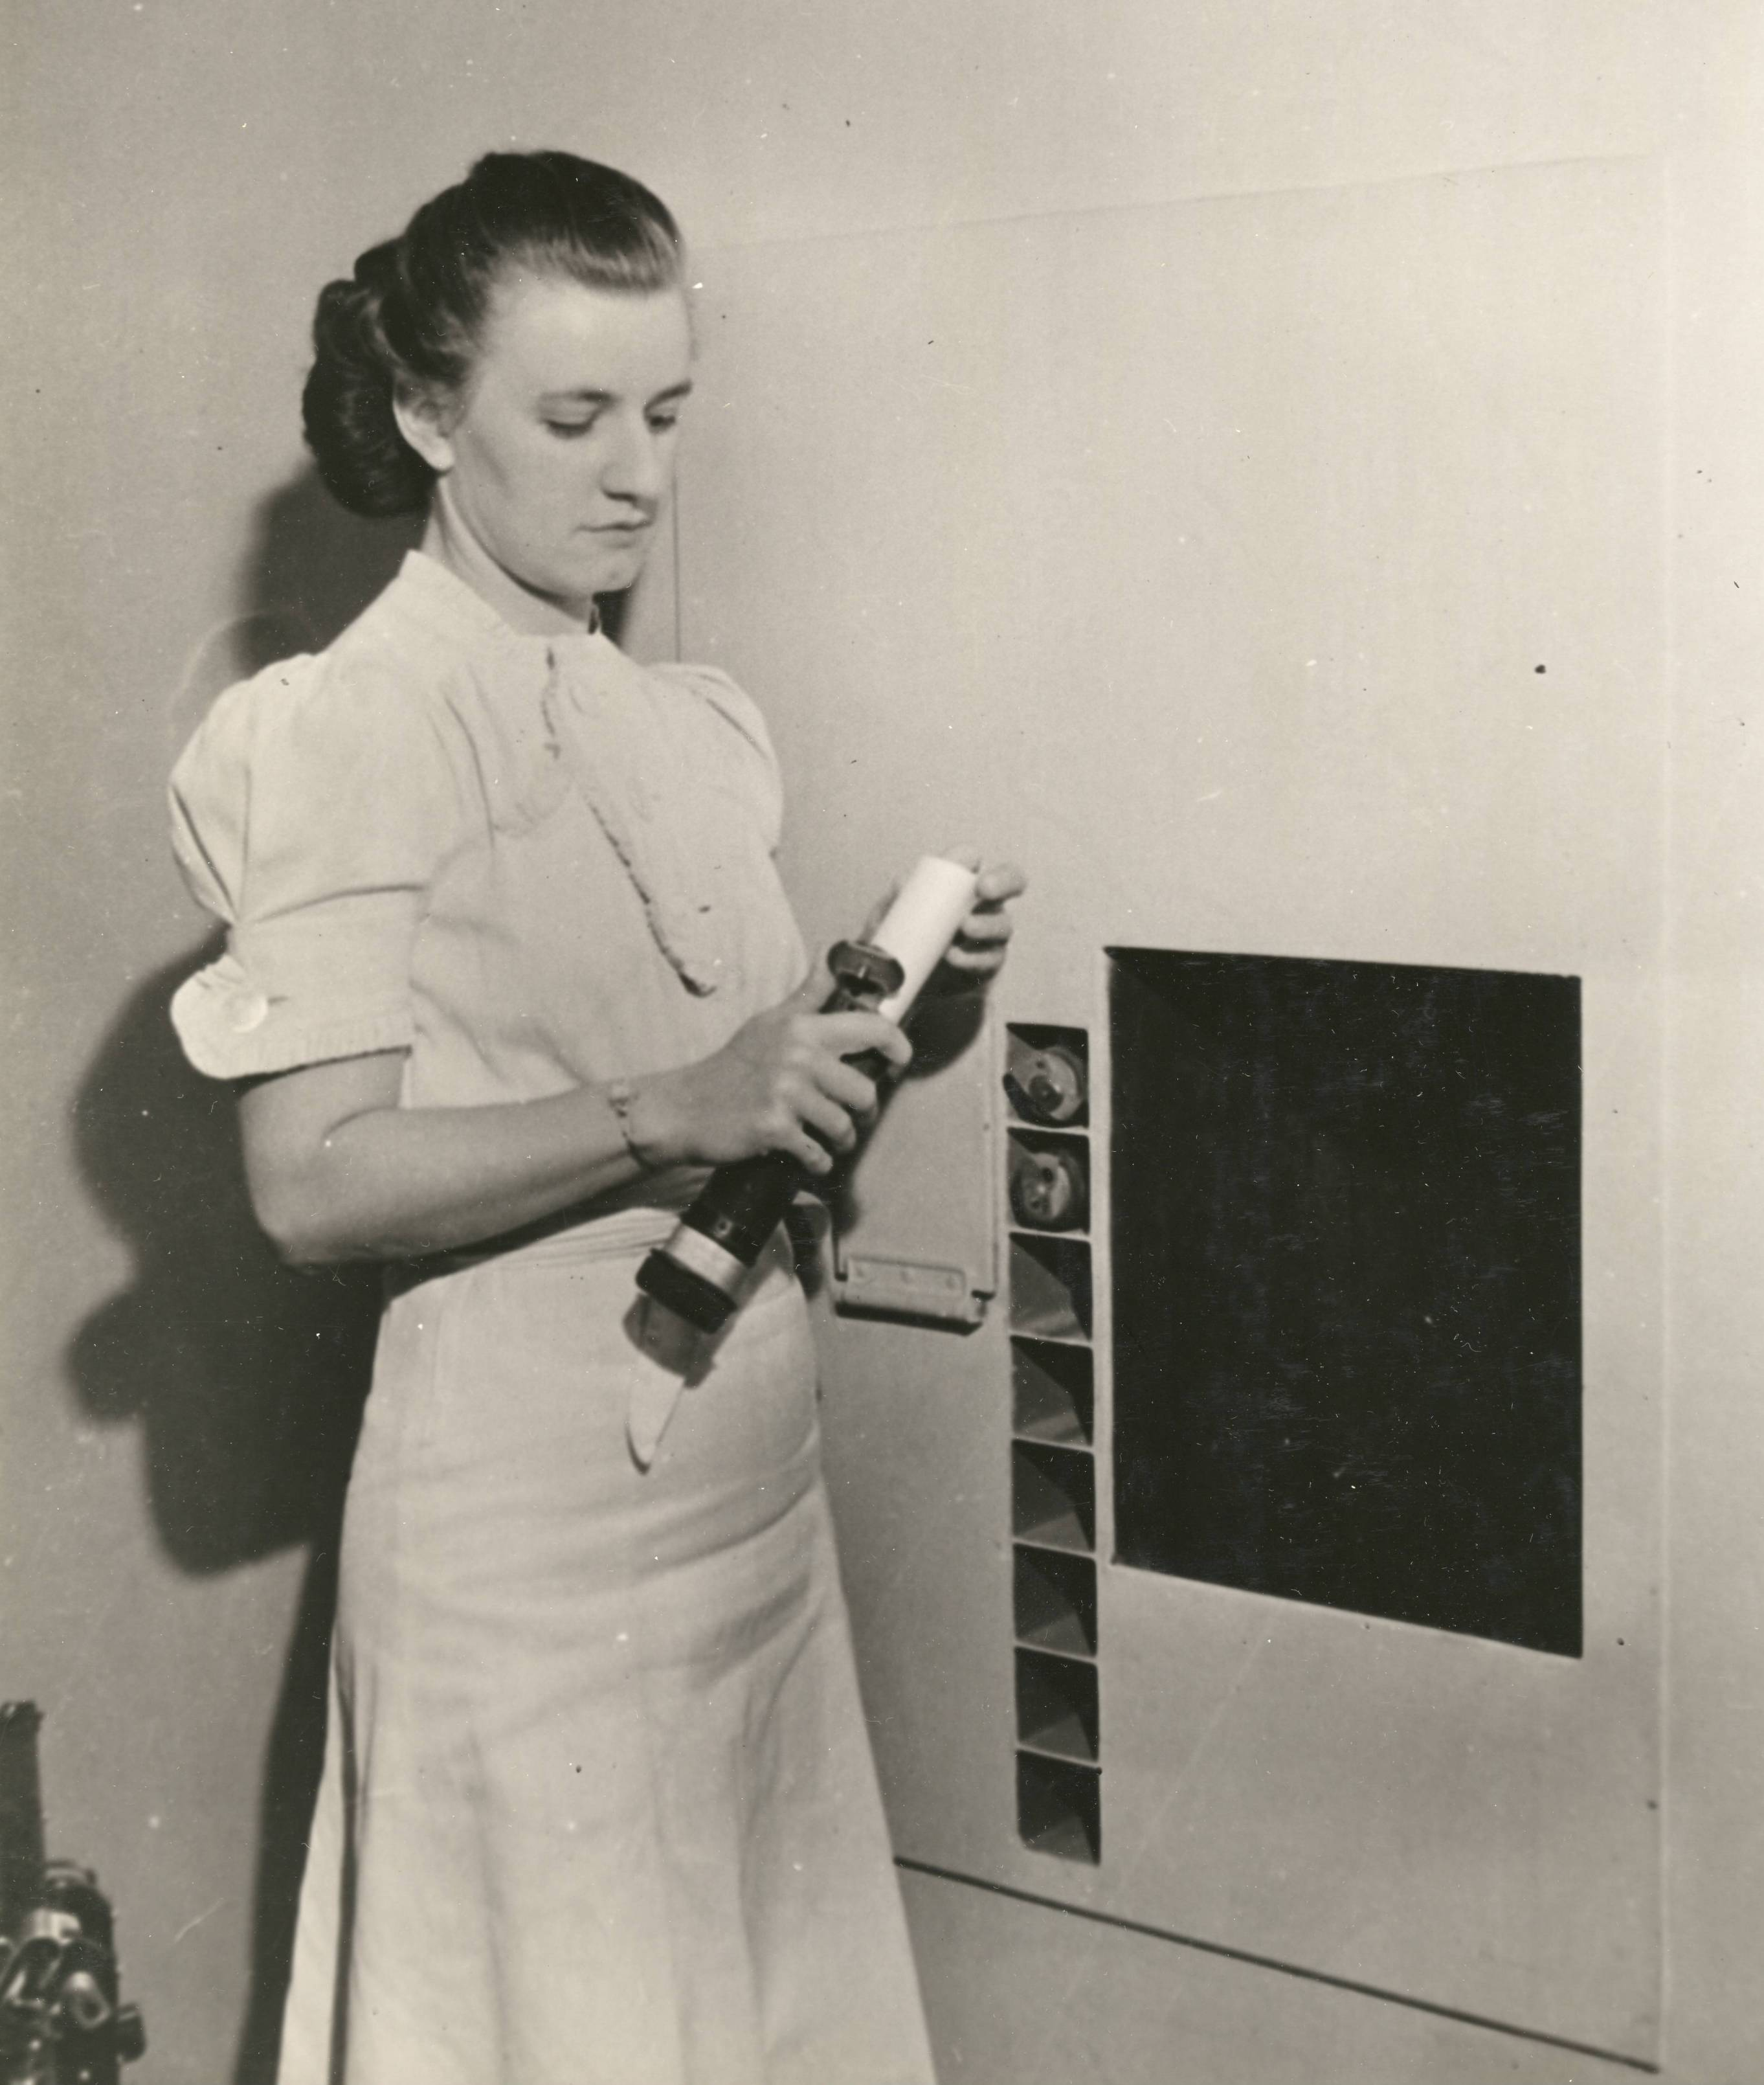 64-NA-340 Edith Houbert Retrieves Request from Pneumatic Tube, 1940 - cropped